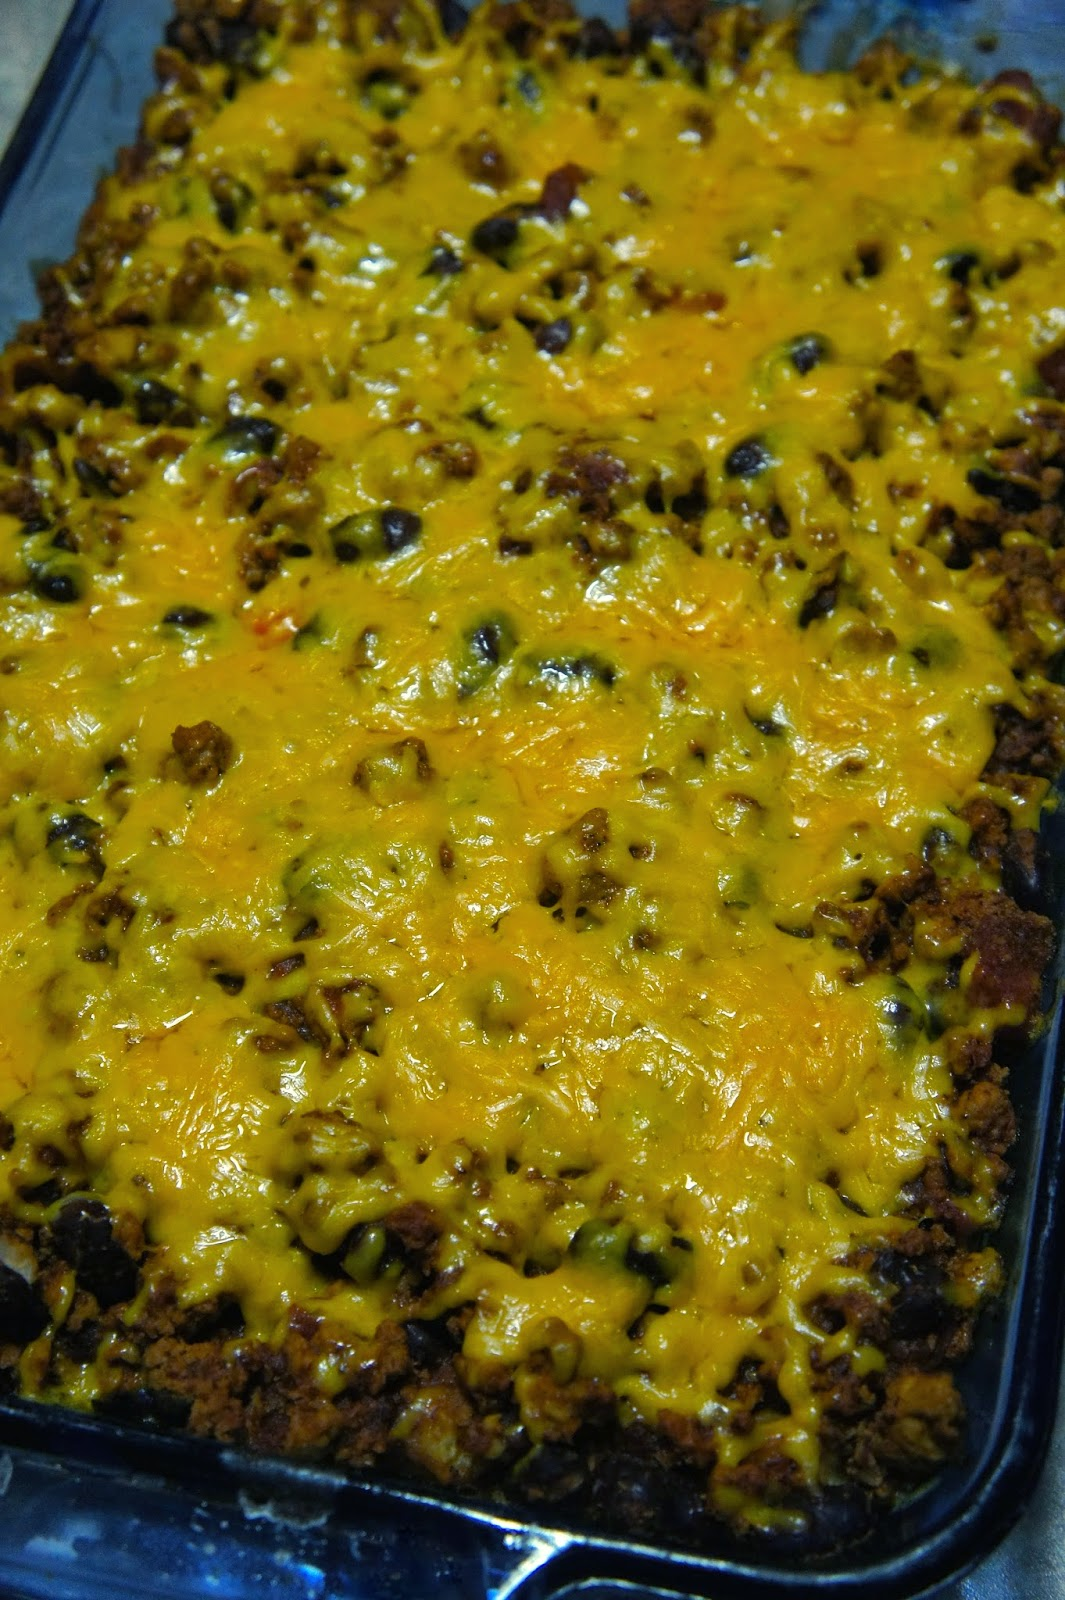 Chili Cheese Tater Tot Casserole: Savory Sweet and Satisfying